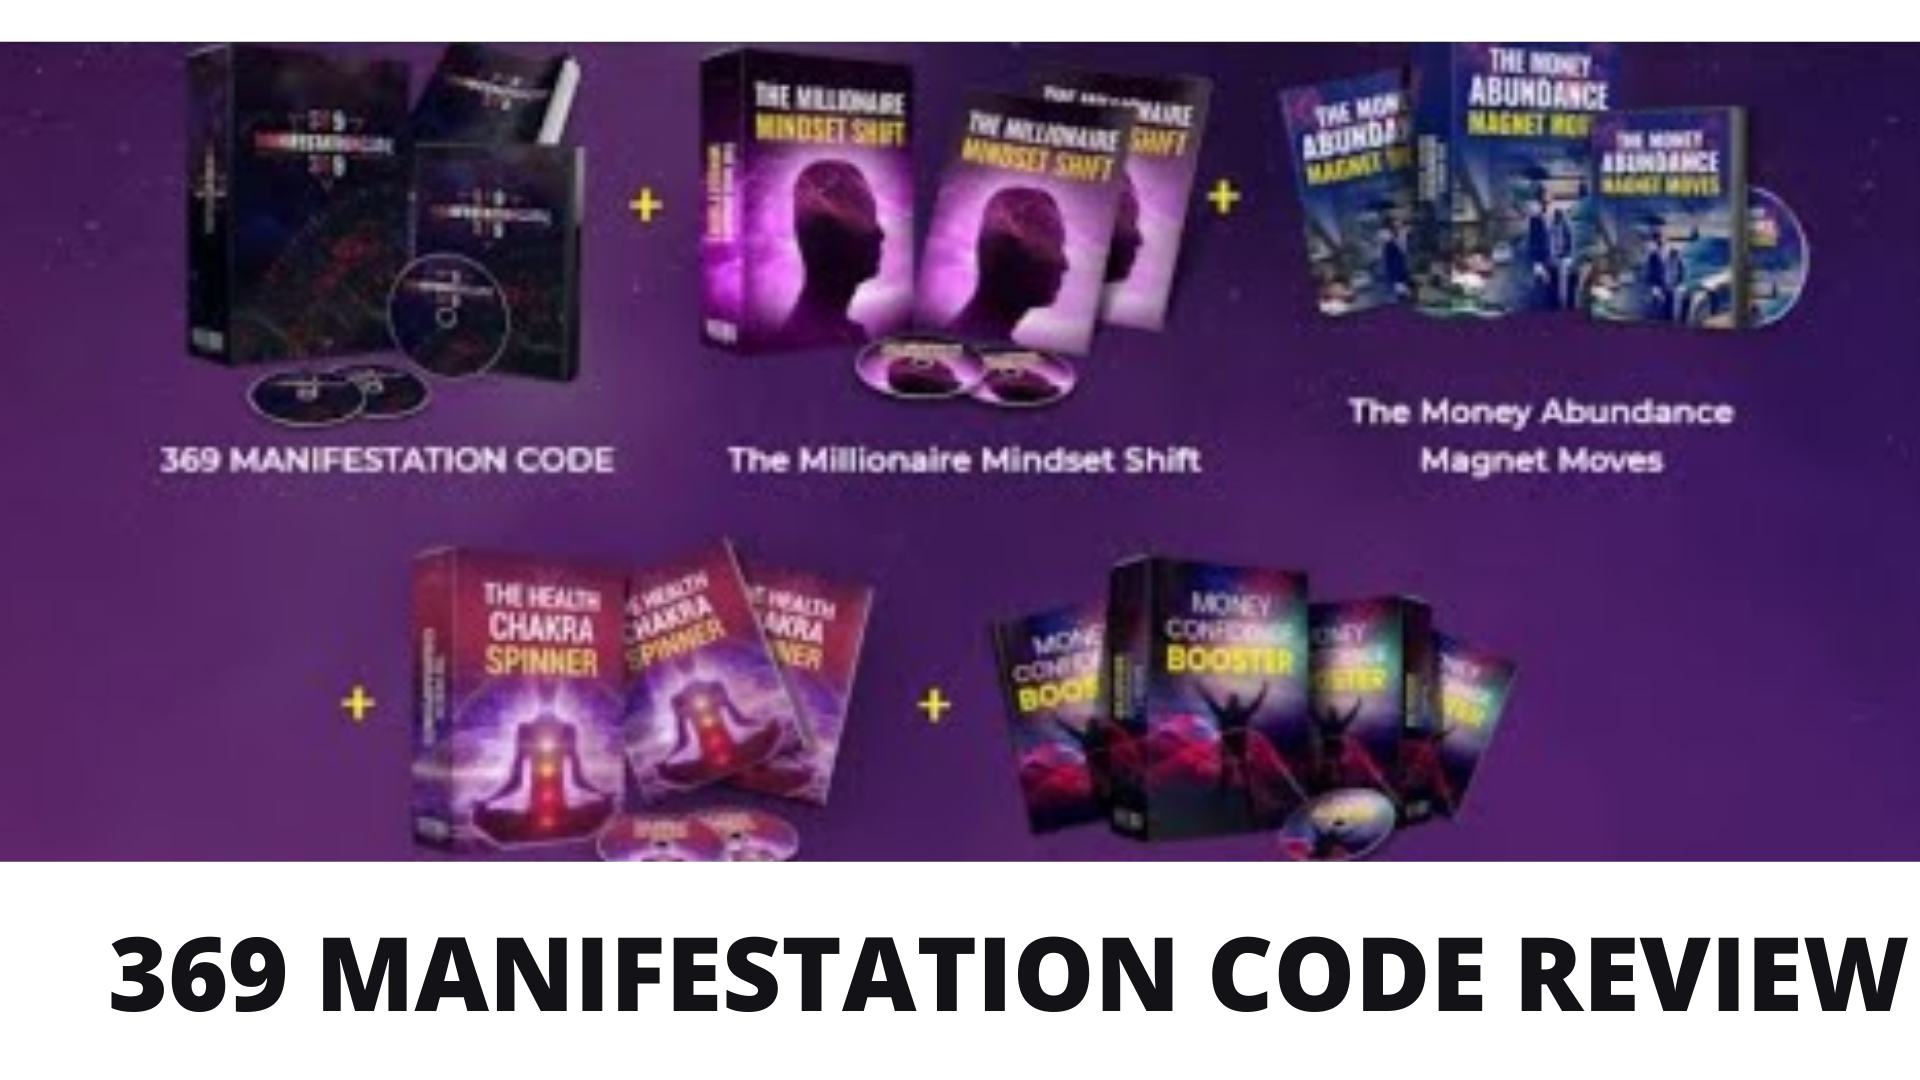 369 Manifestation Code Review-Is this a scam?